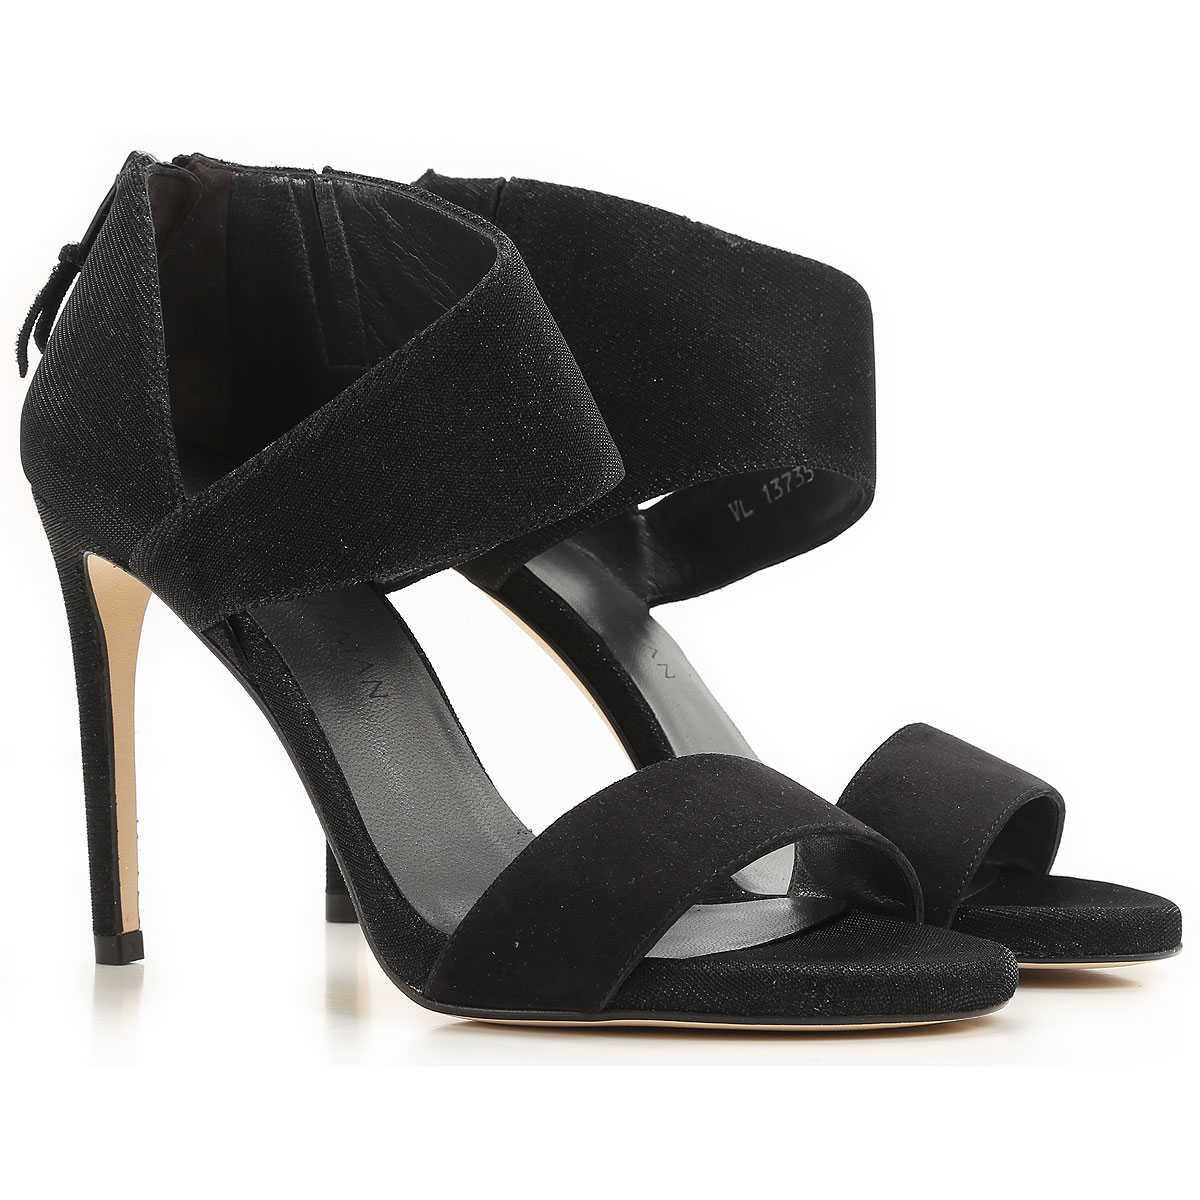 Stuart Weitzman Womens Shoes On Sale in Outlet